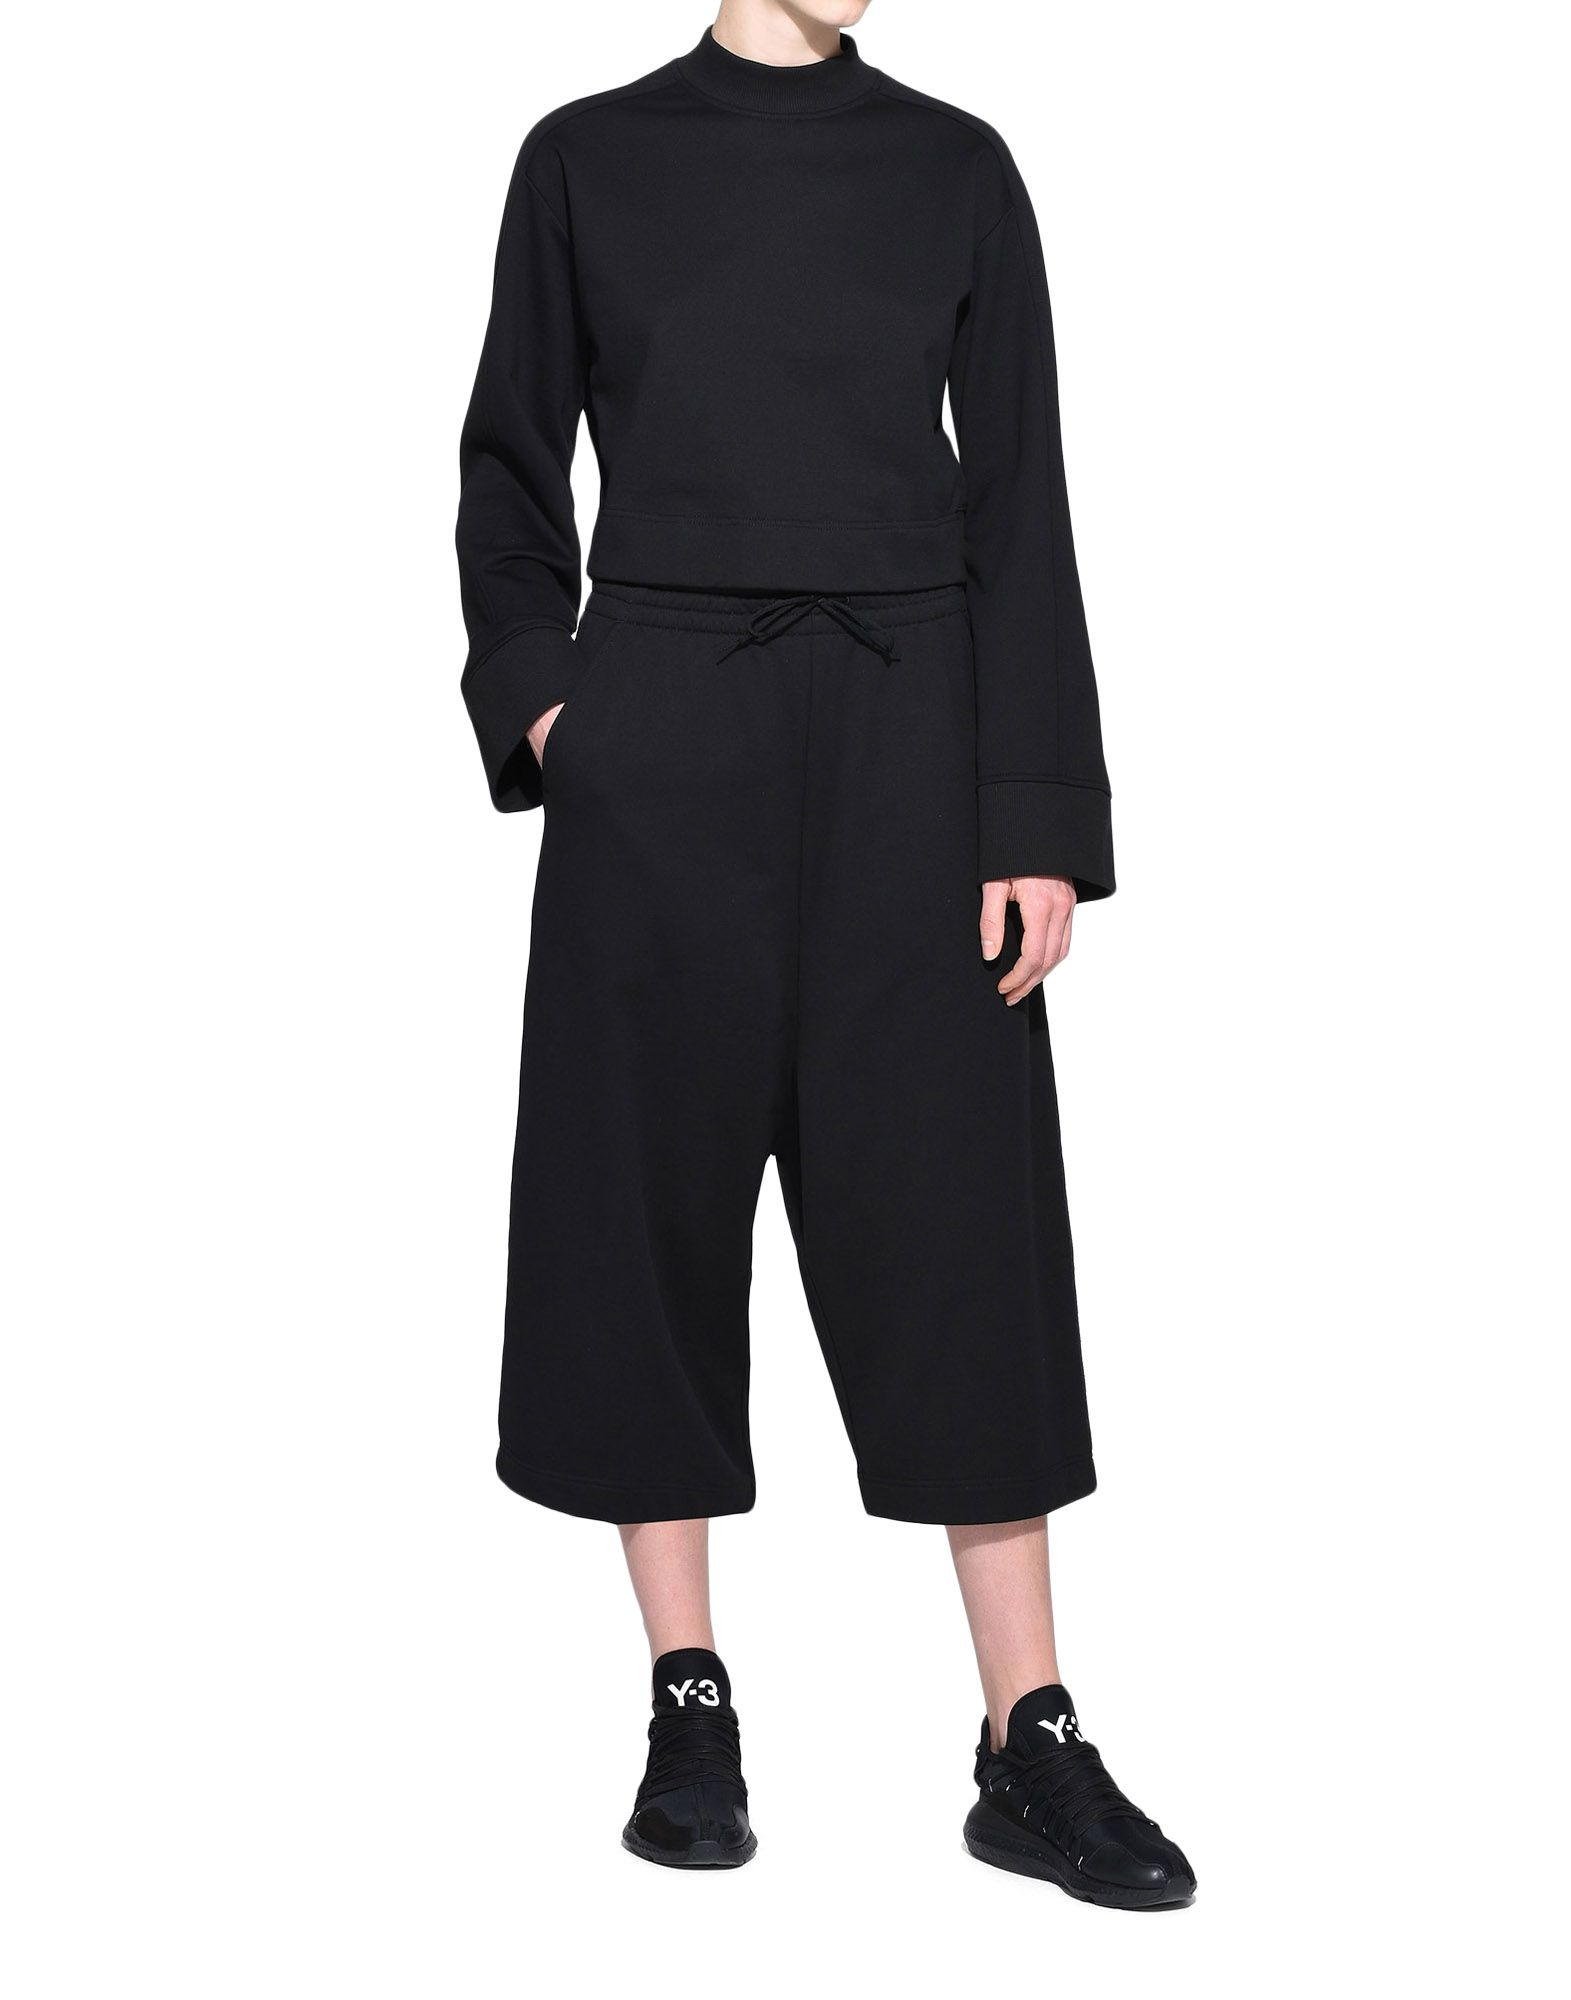 Y-3 Y-3 Wide Cropped Pants dreiviertellange Hose Damen a